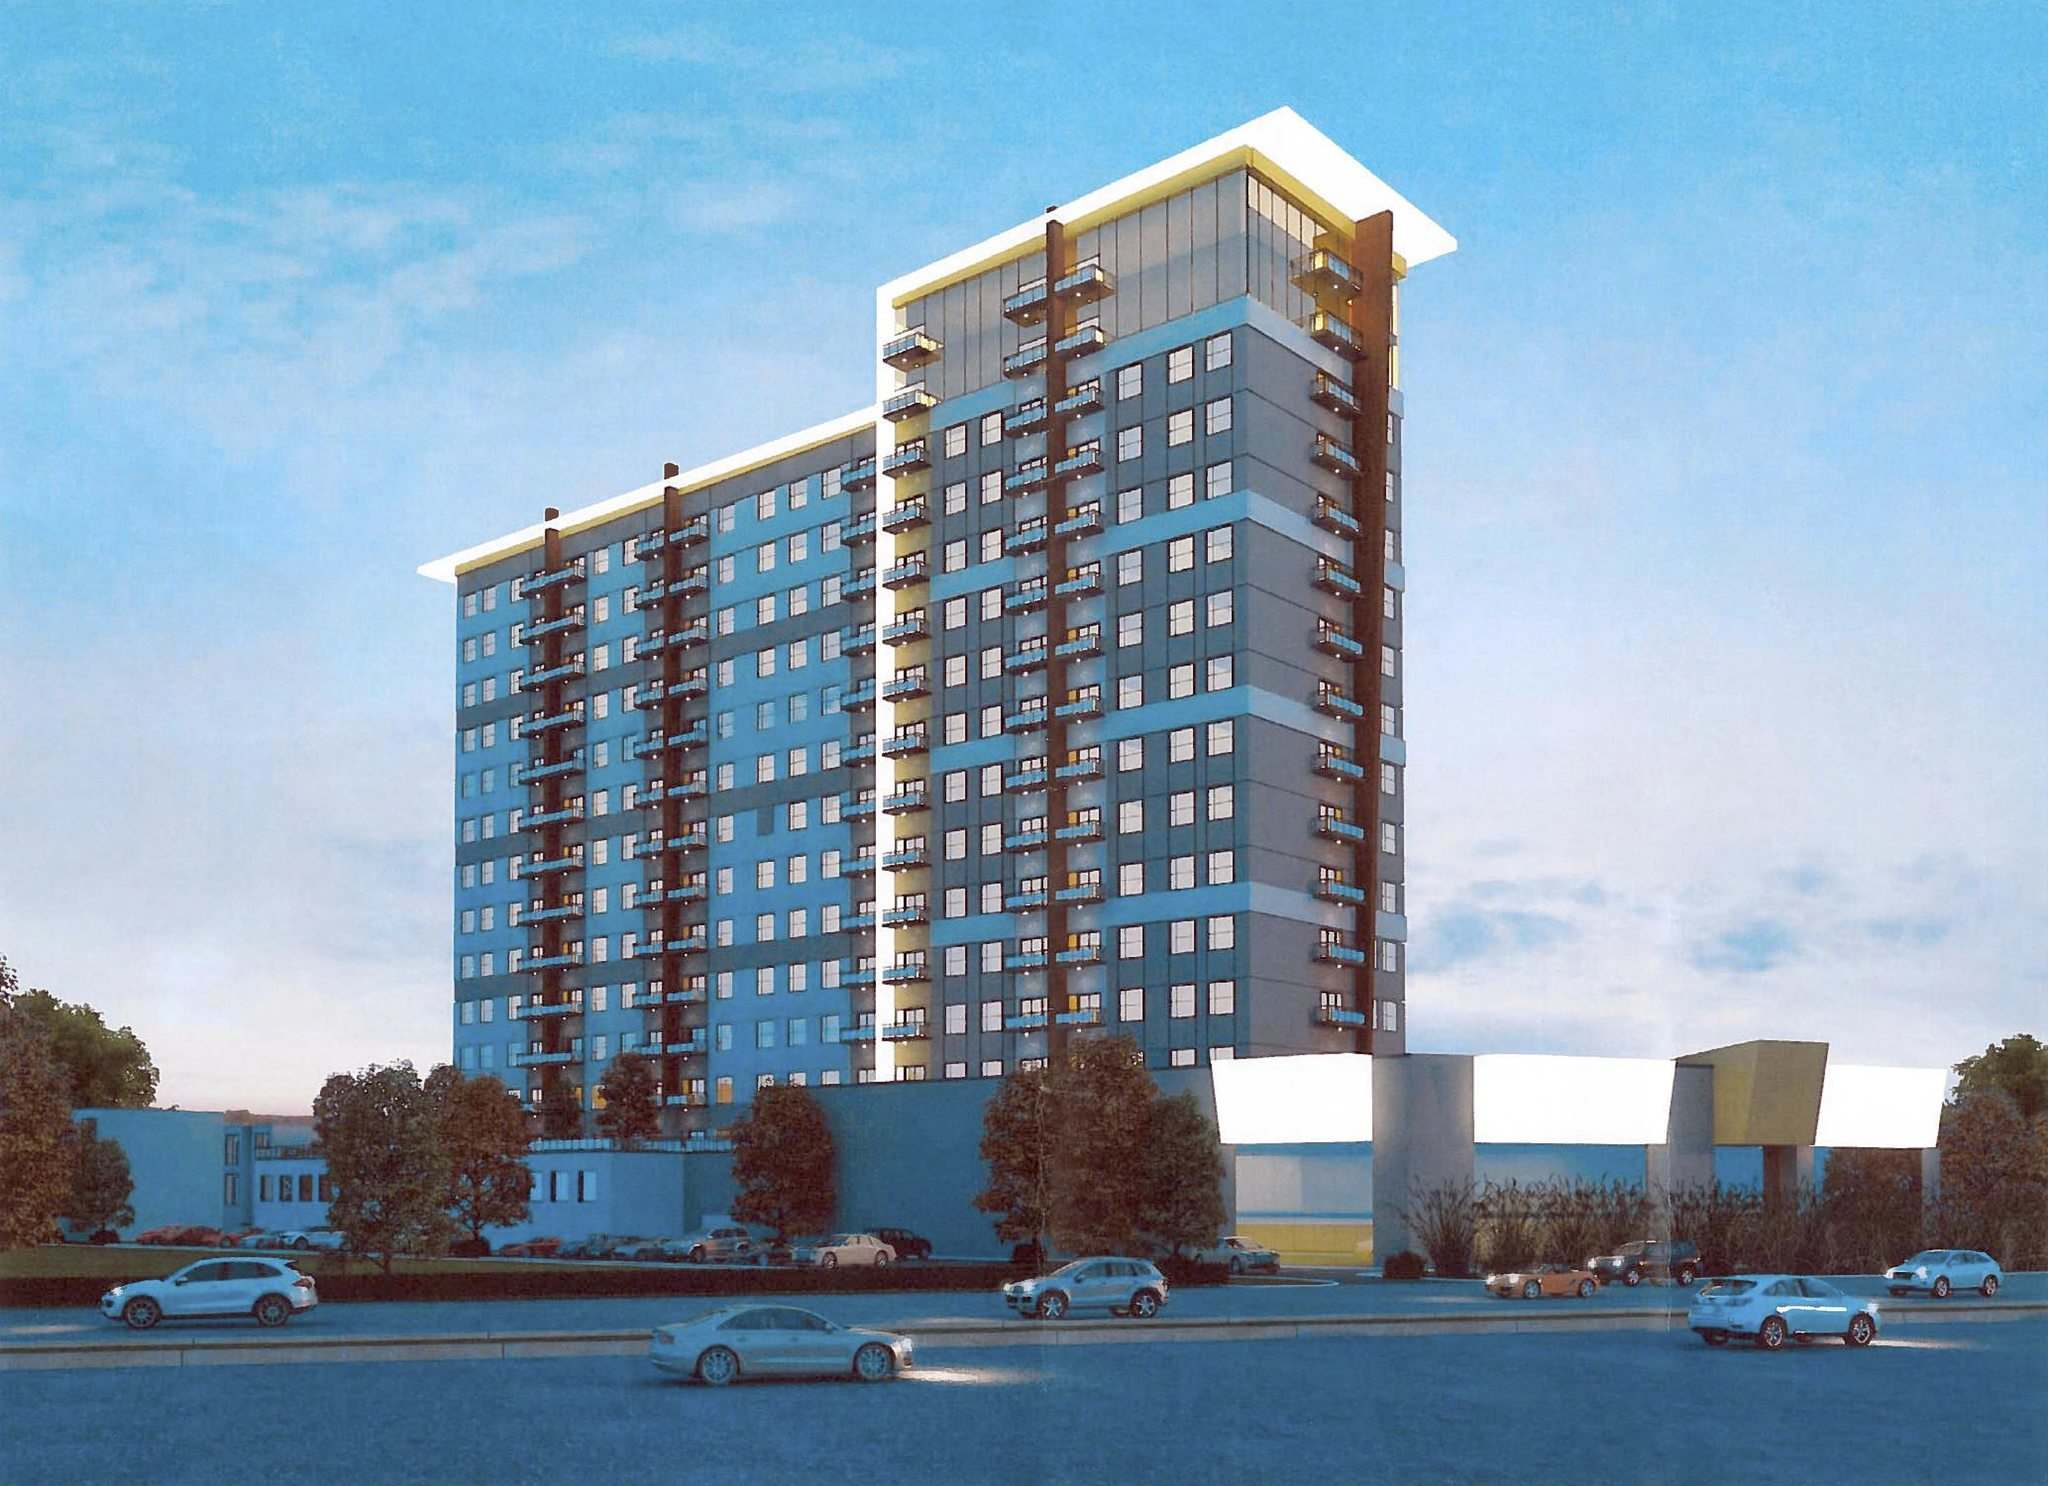 AFFINITY ARCHITECTURE</p><p>A project proposed for a large vacant lot in the 3000 block of Pembina Highway would include two apartment towers 13 and 15 storeys high, and feature a combined 410 residential units.</p></p>